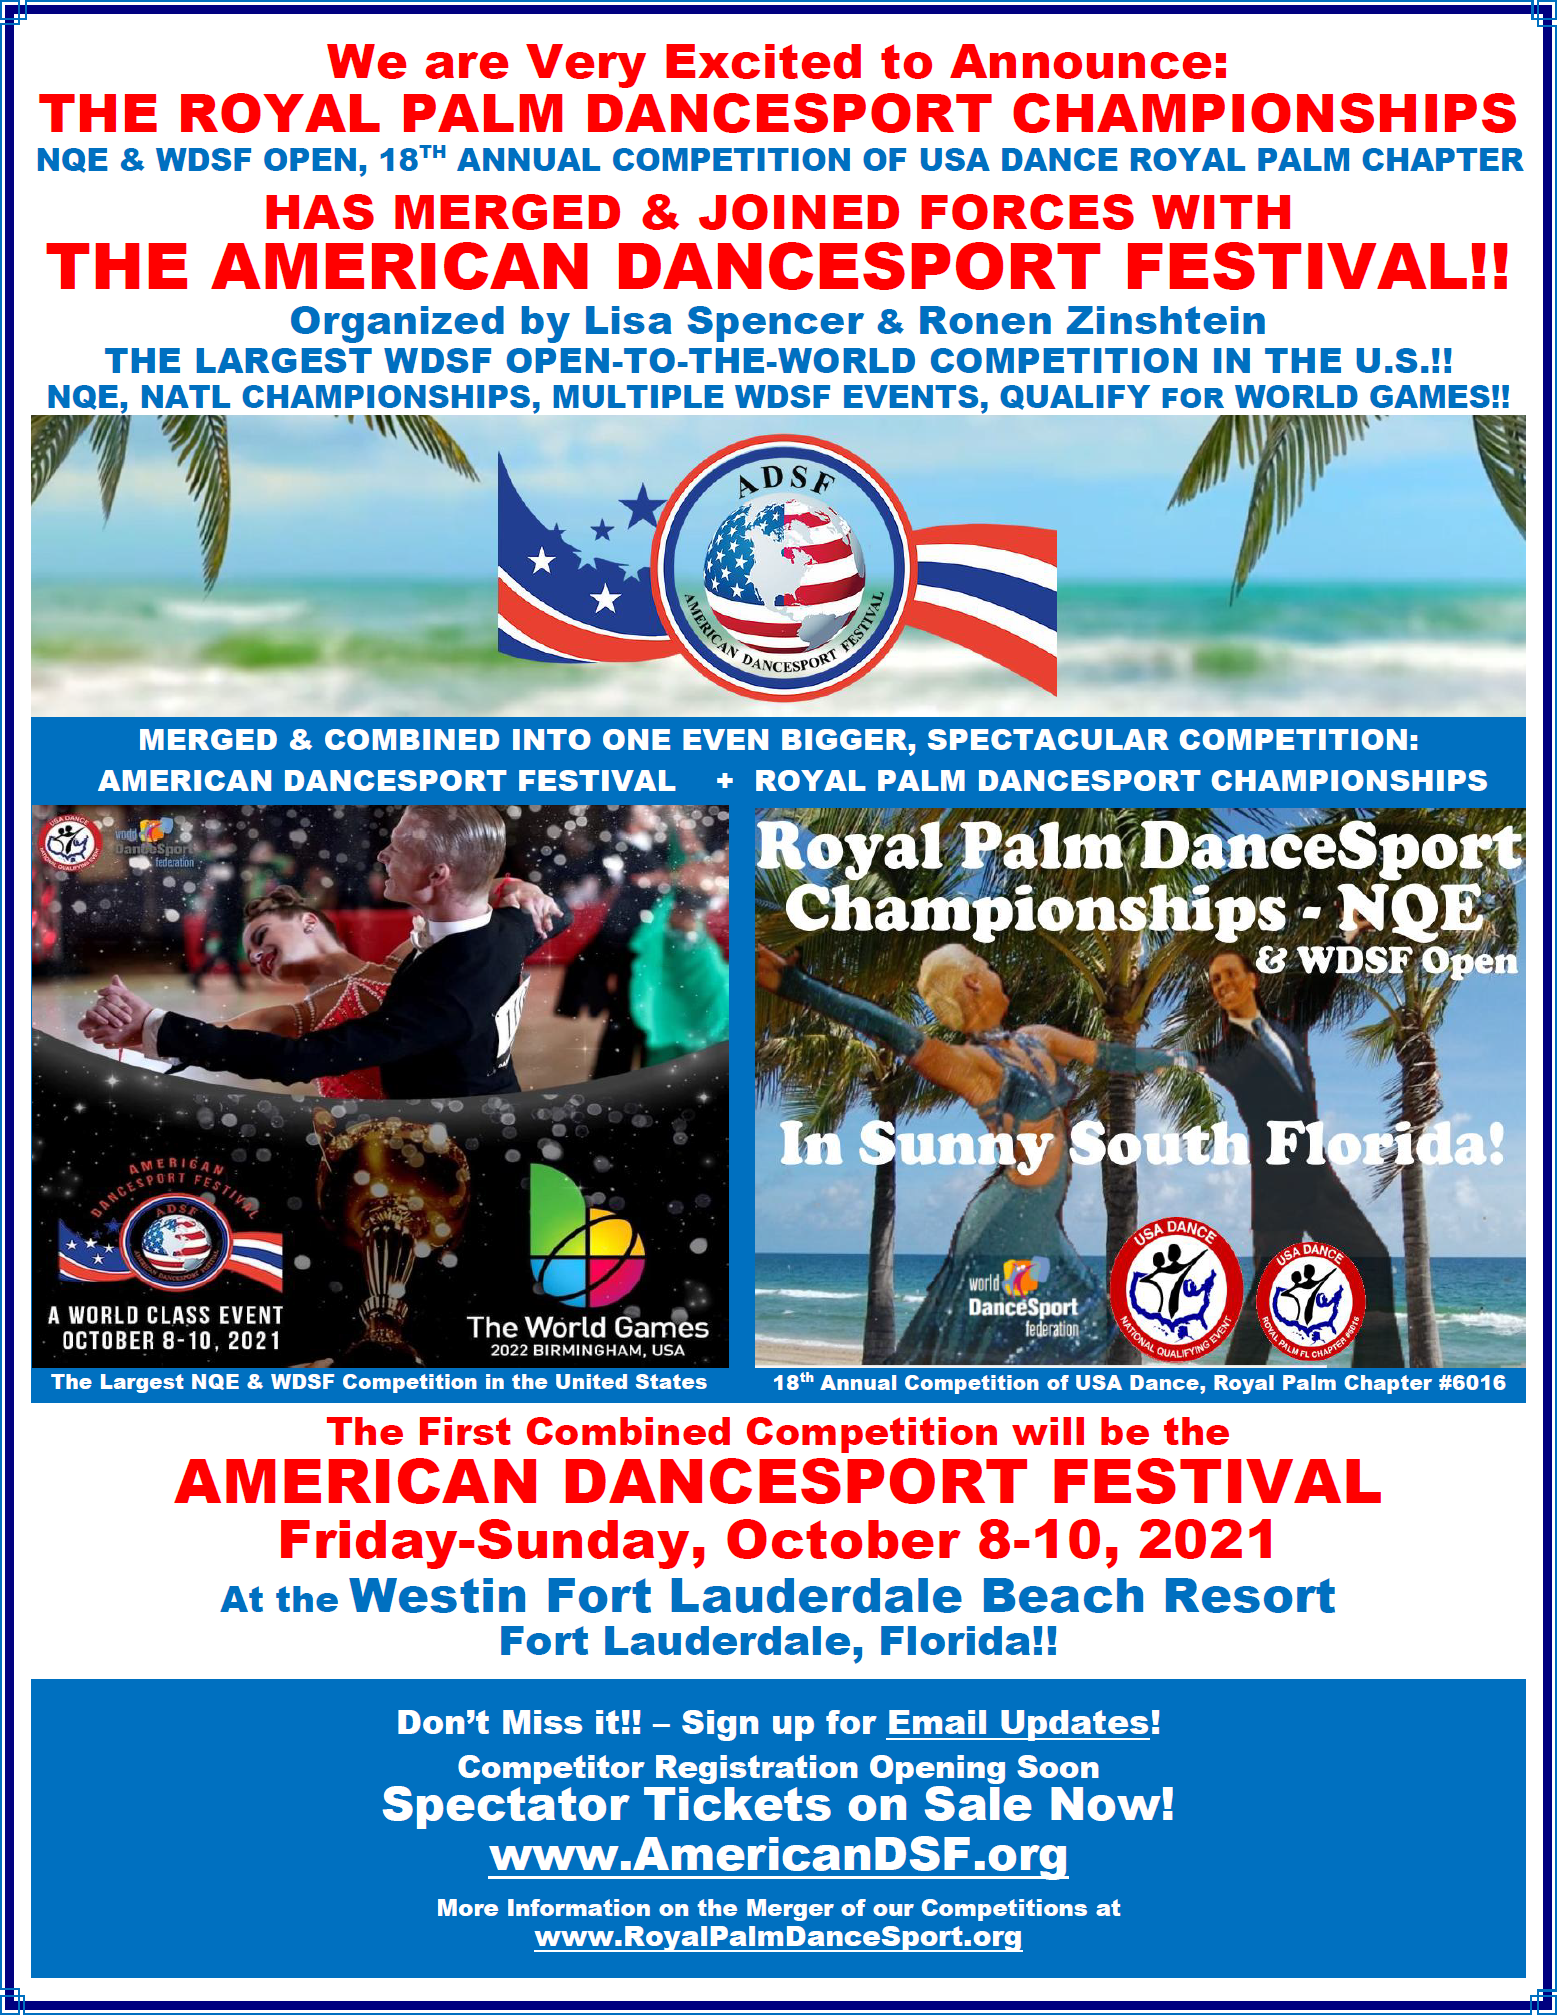 ADSF & Royal Palm Combined Competition - October 8-10, 2021 - at Westin Fort Lauderdale Beach Resort!